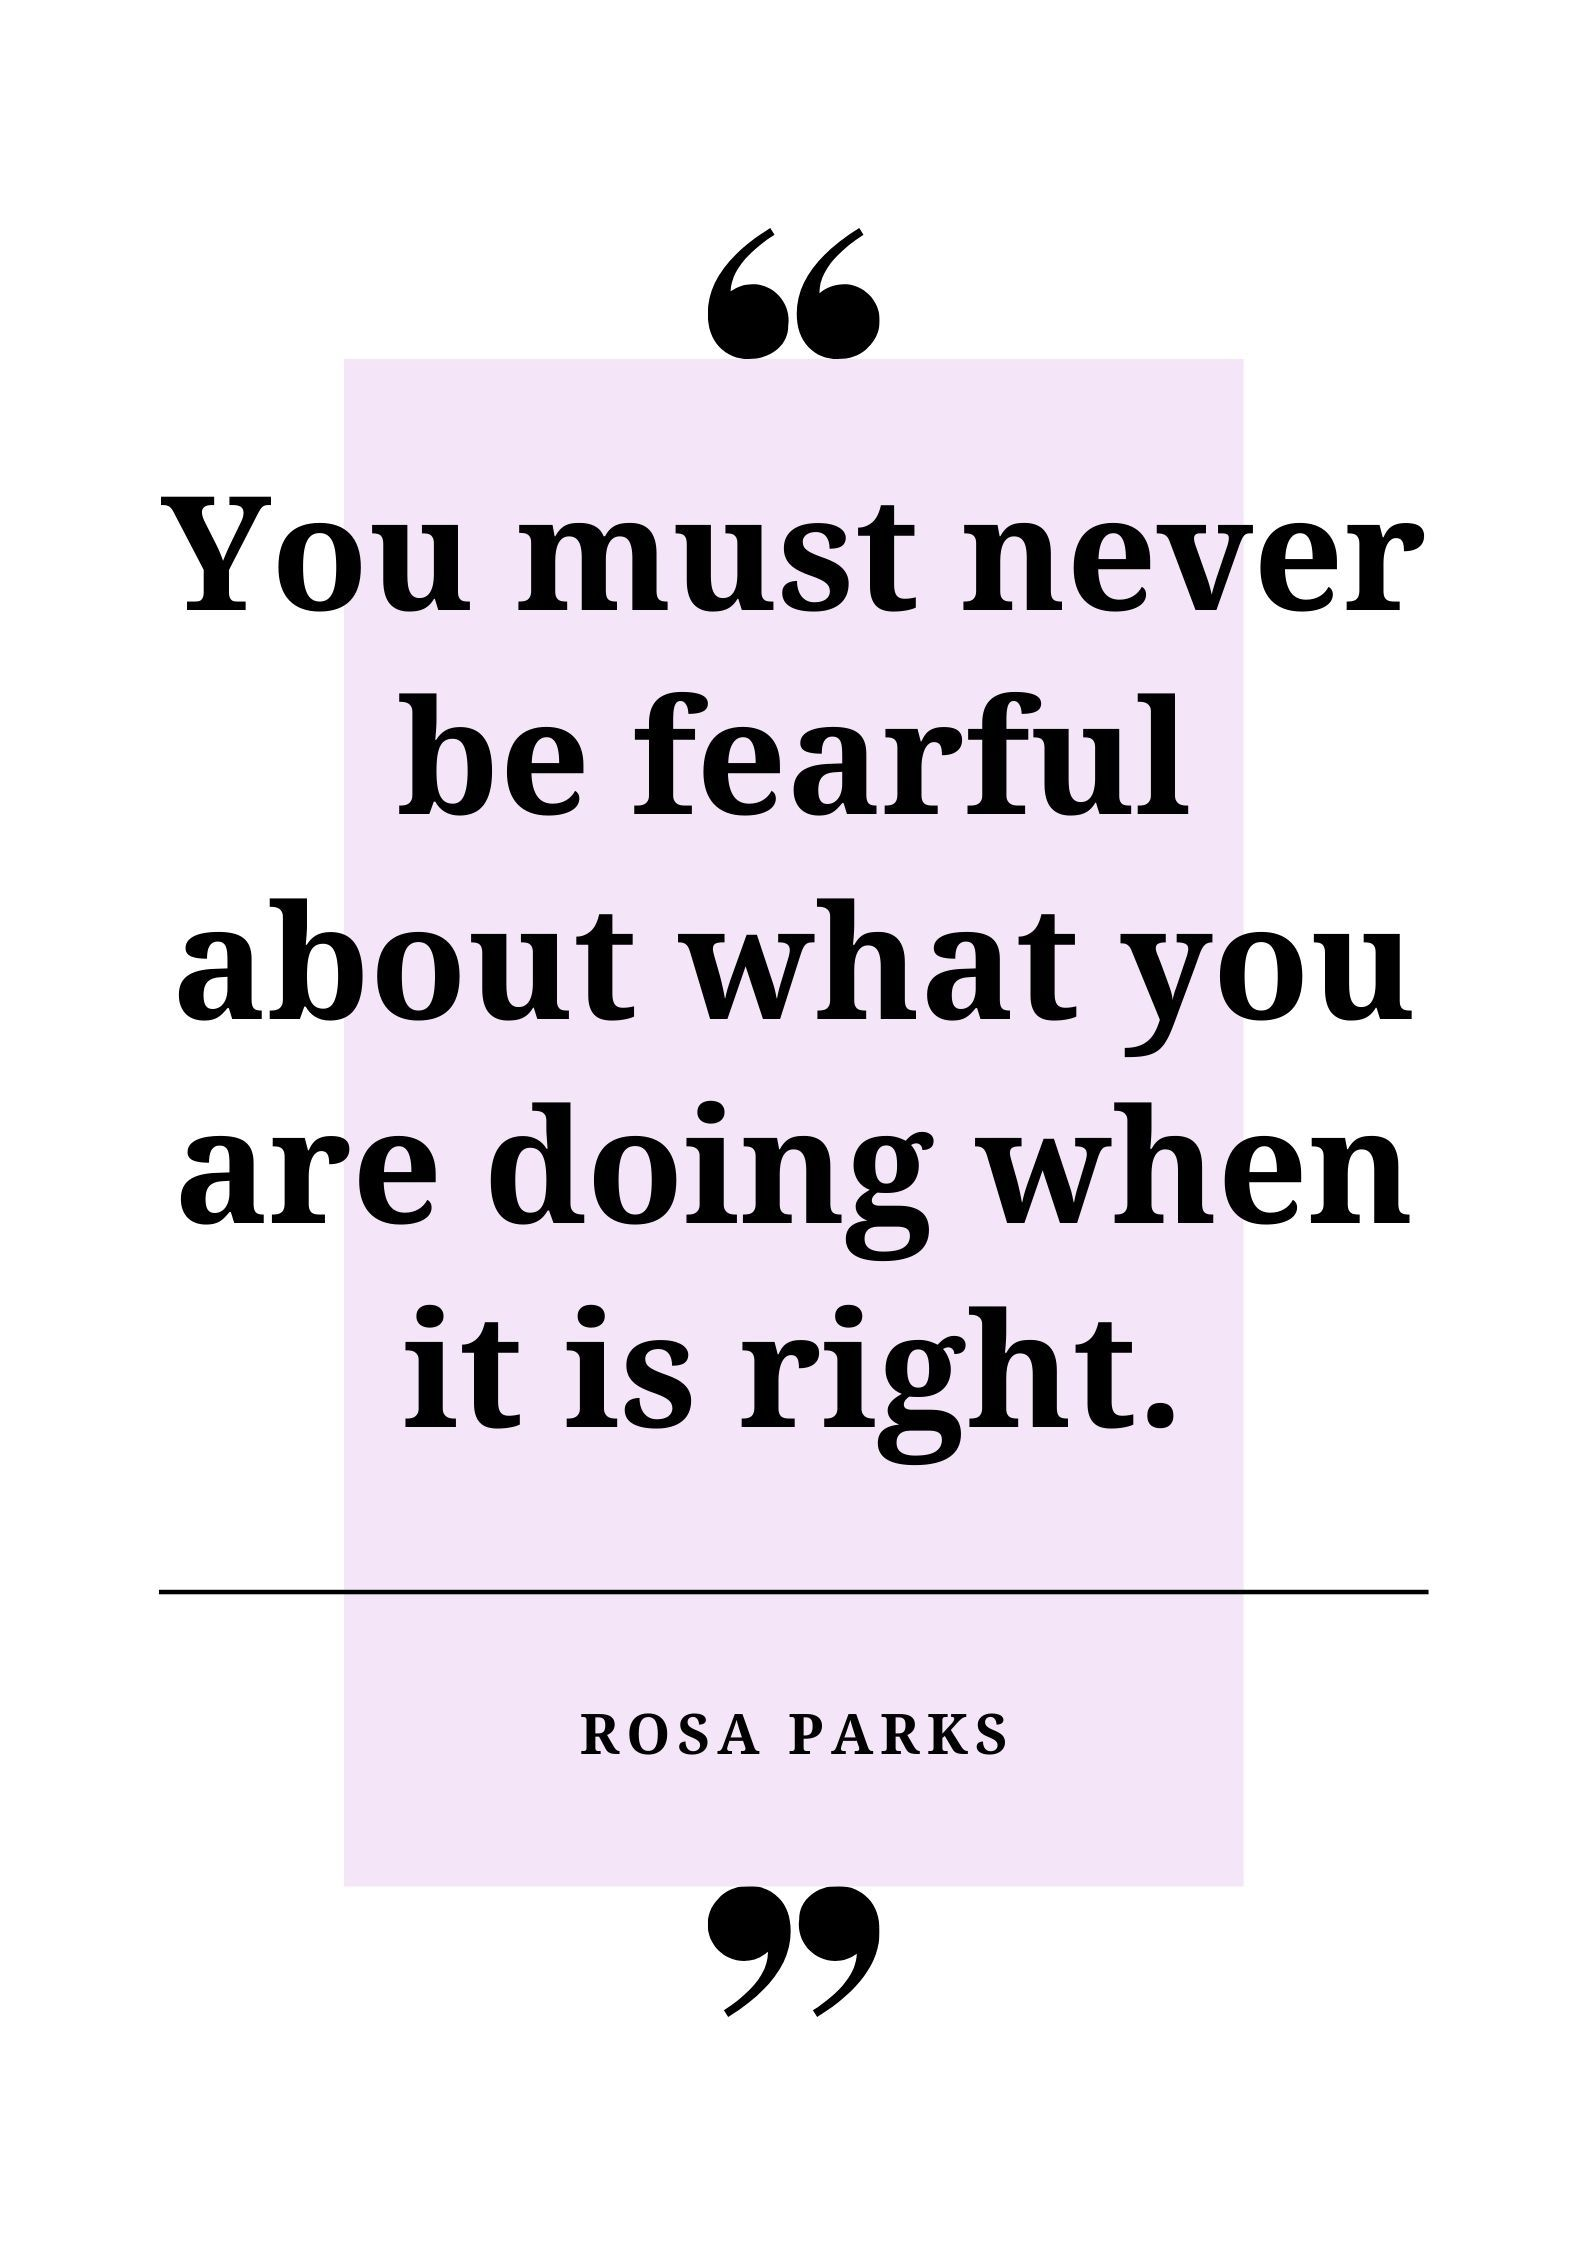 Download this selection of 10 posters featuring quotes by American civil rights activist Rosa Parks. Brighten up school bulletin boards whilst displaying important and thought-provoking messages for your students and fellow colleagues to read.